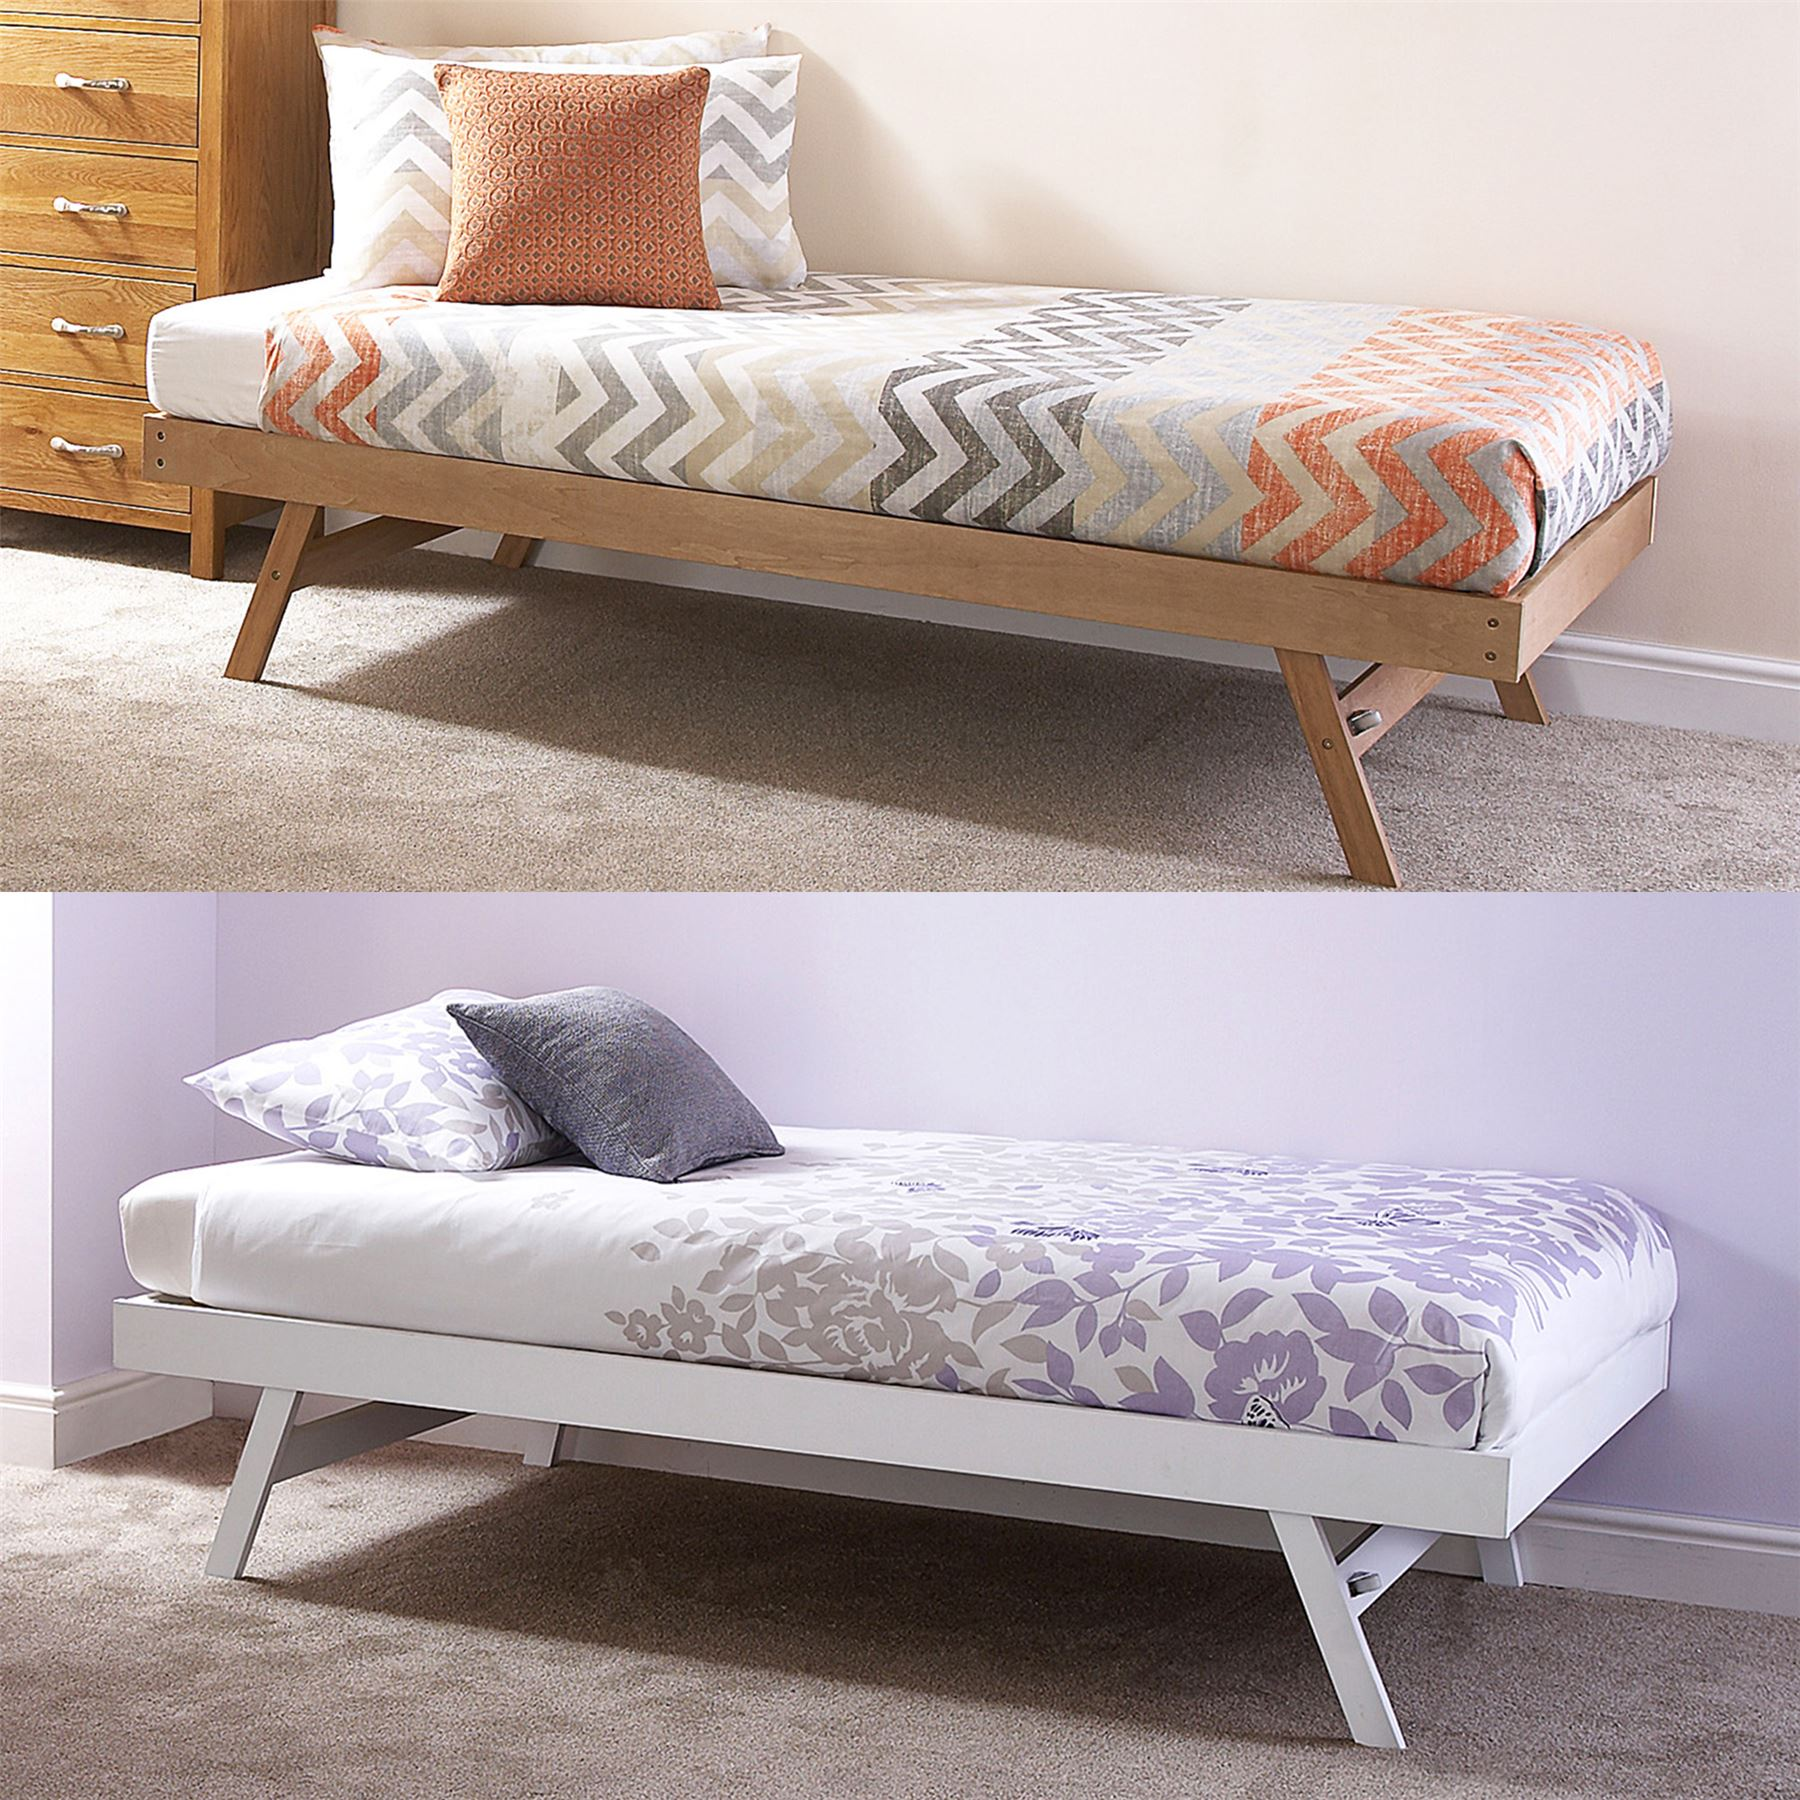 Single Day Bed Madrid Wooden 3ft Single Day Bed Frame & Trundle Guest